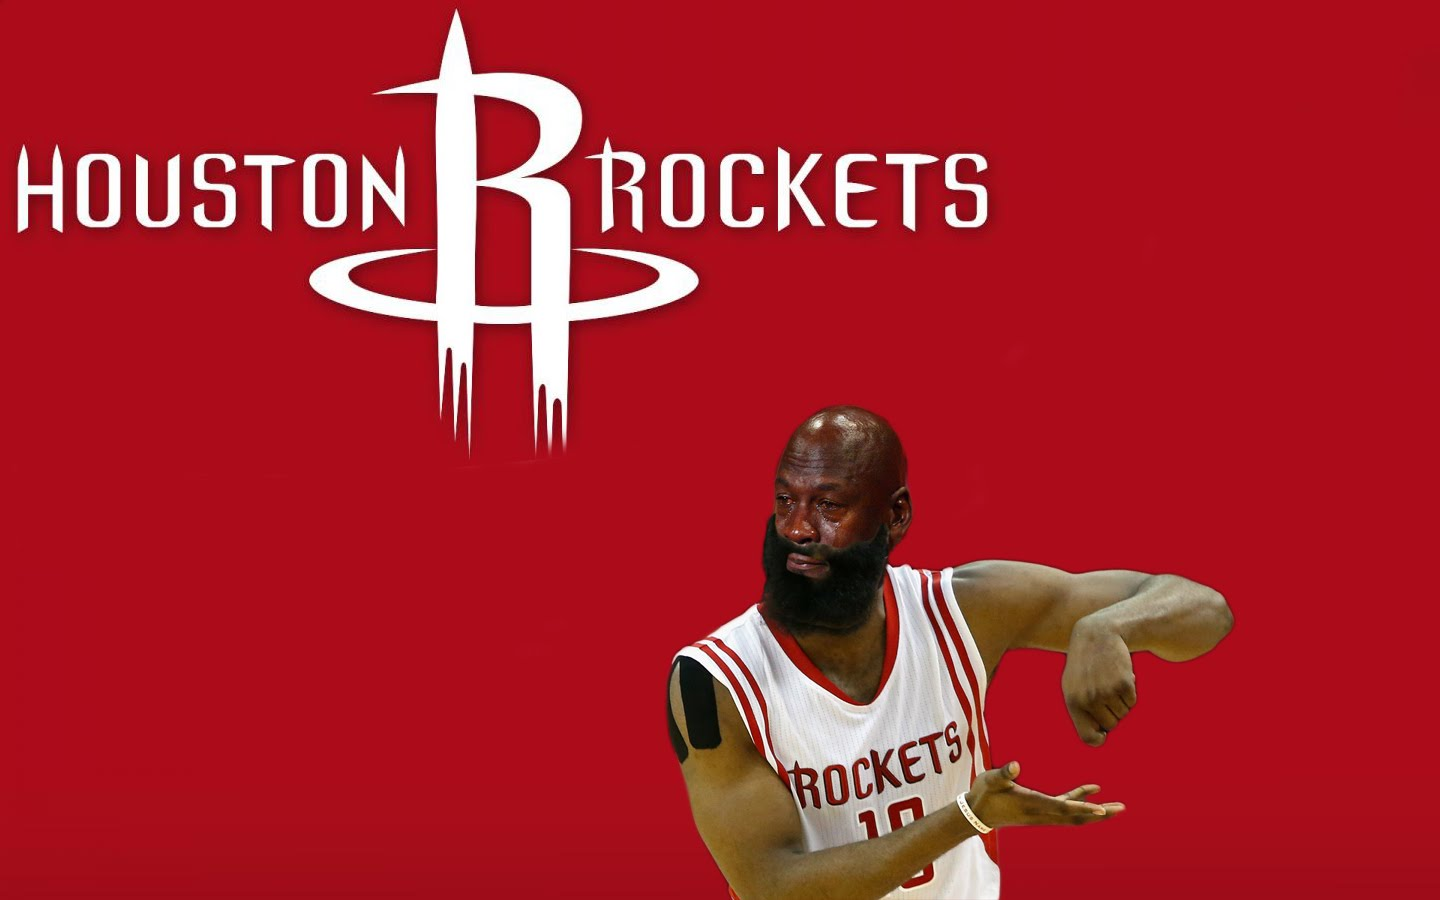 HQ Houston Rockets Wallpapers | File 85.65Kb